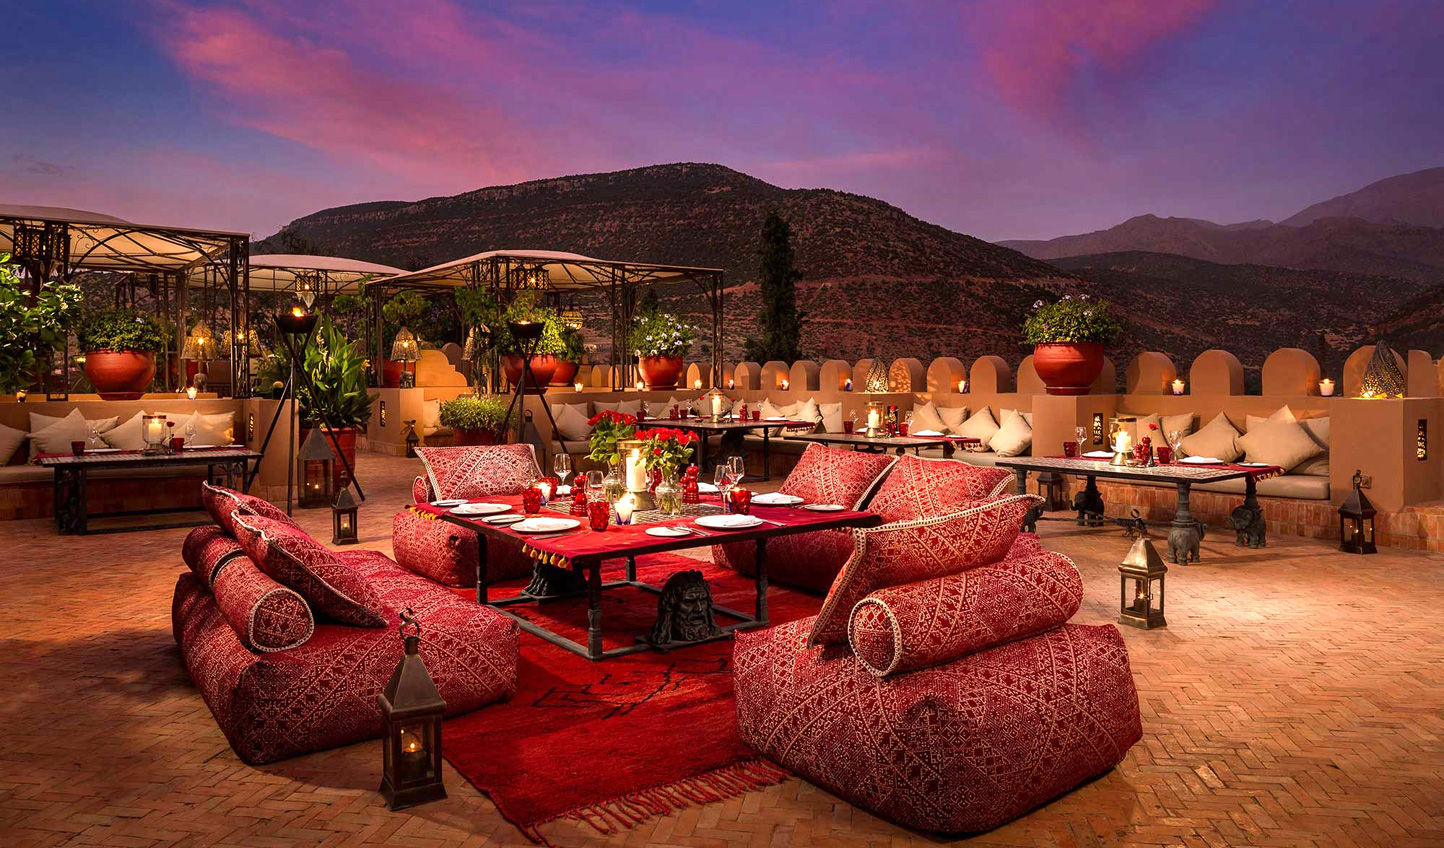 Relax beneath the stars as you enjoy an aperitif in the evening